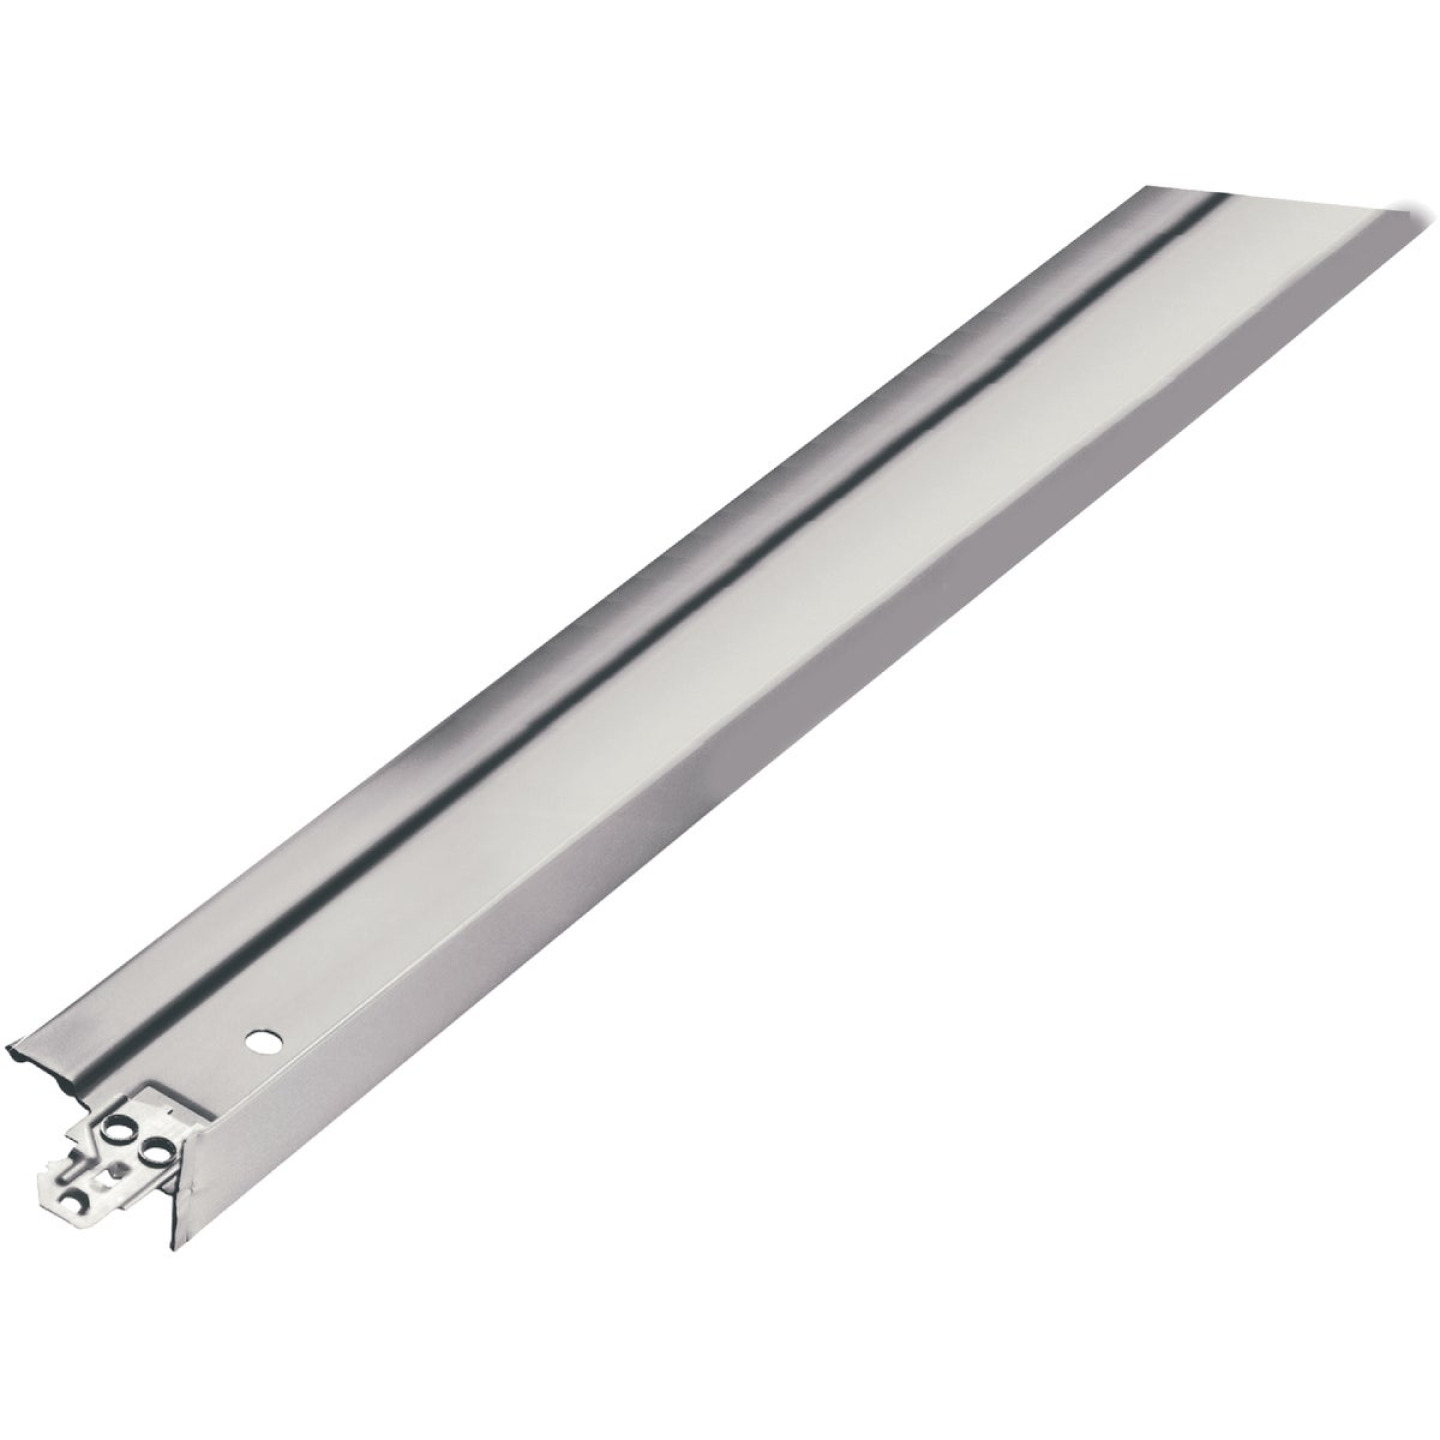 Donn 12 Ft. x 1-1/2 In. White Steel Fire Resistant Main Tee Image 4